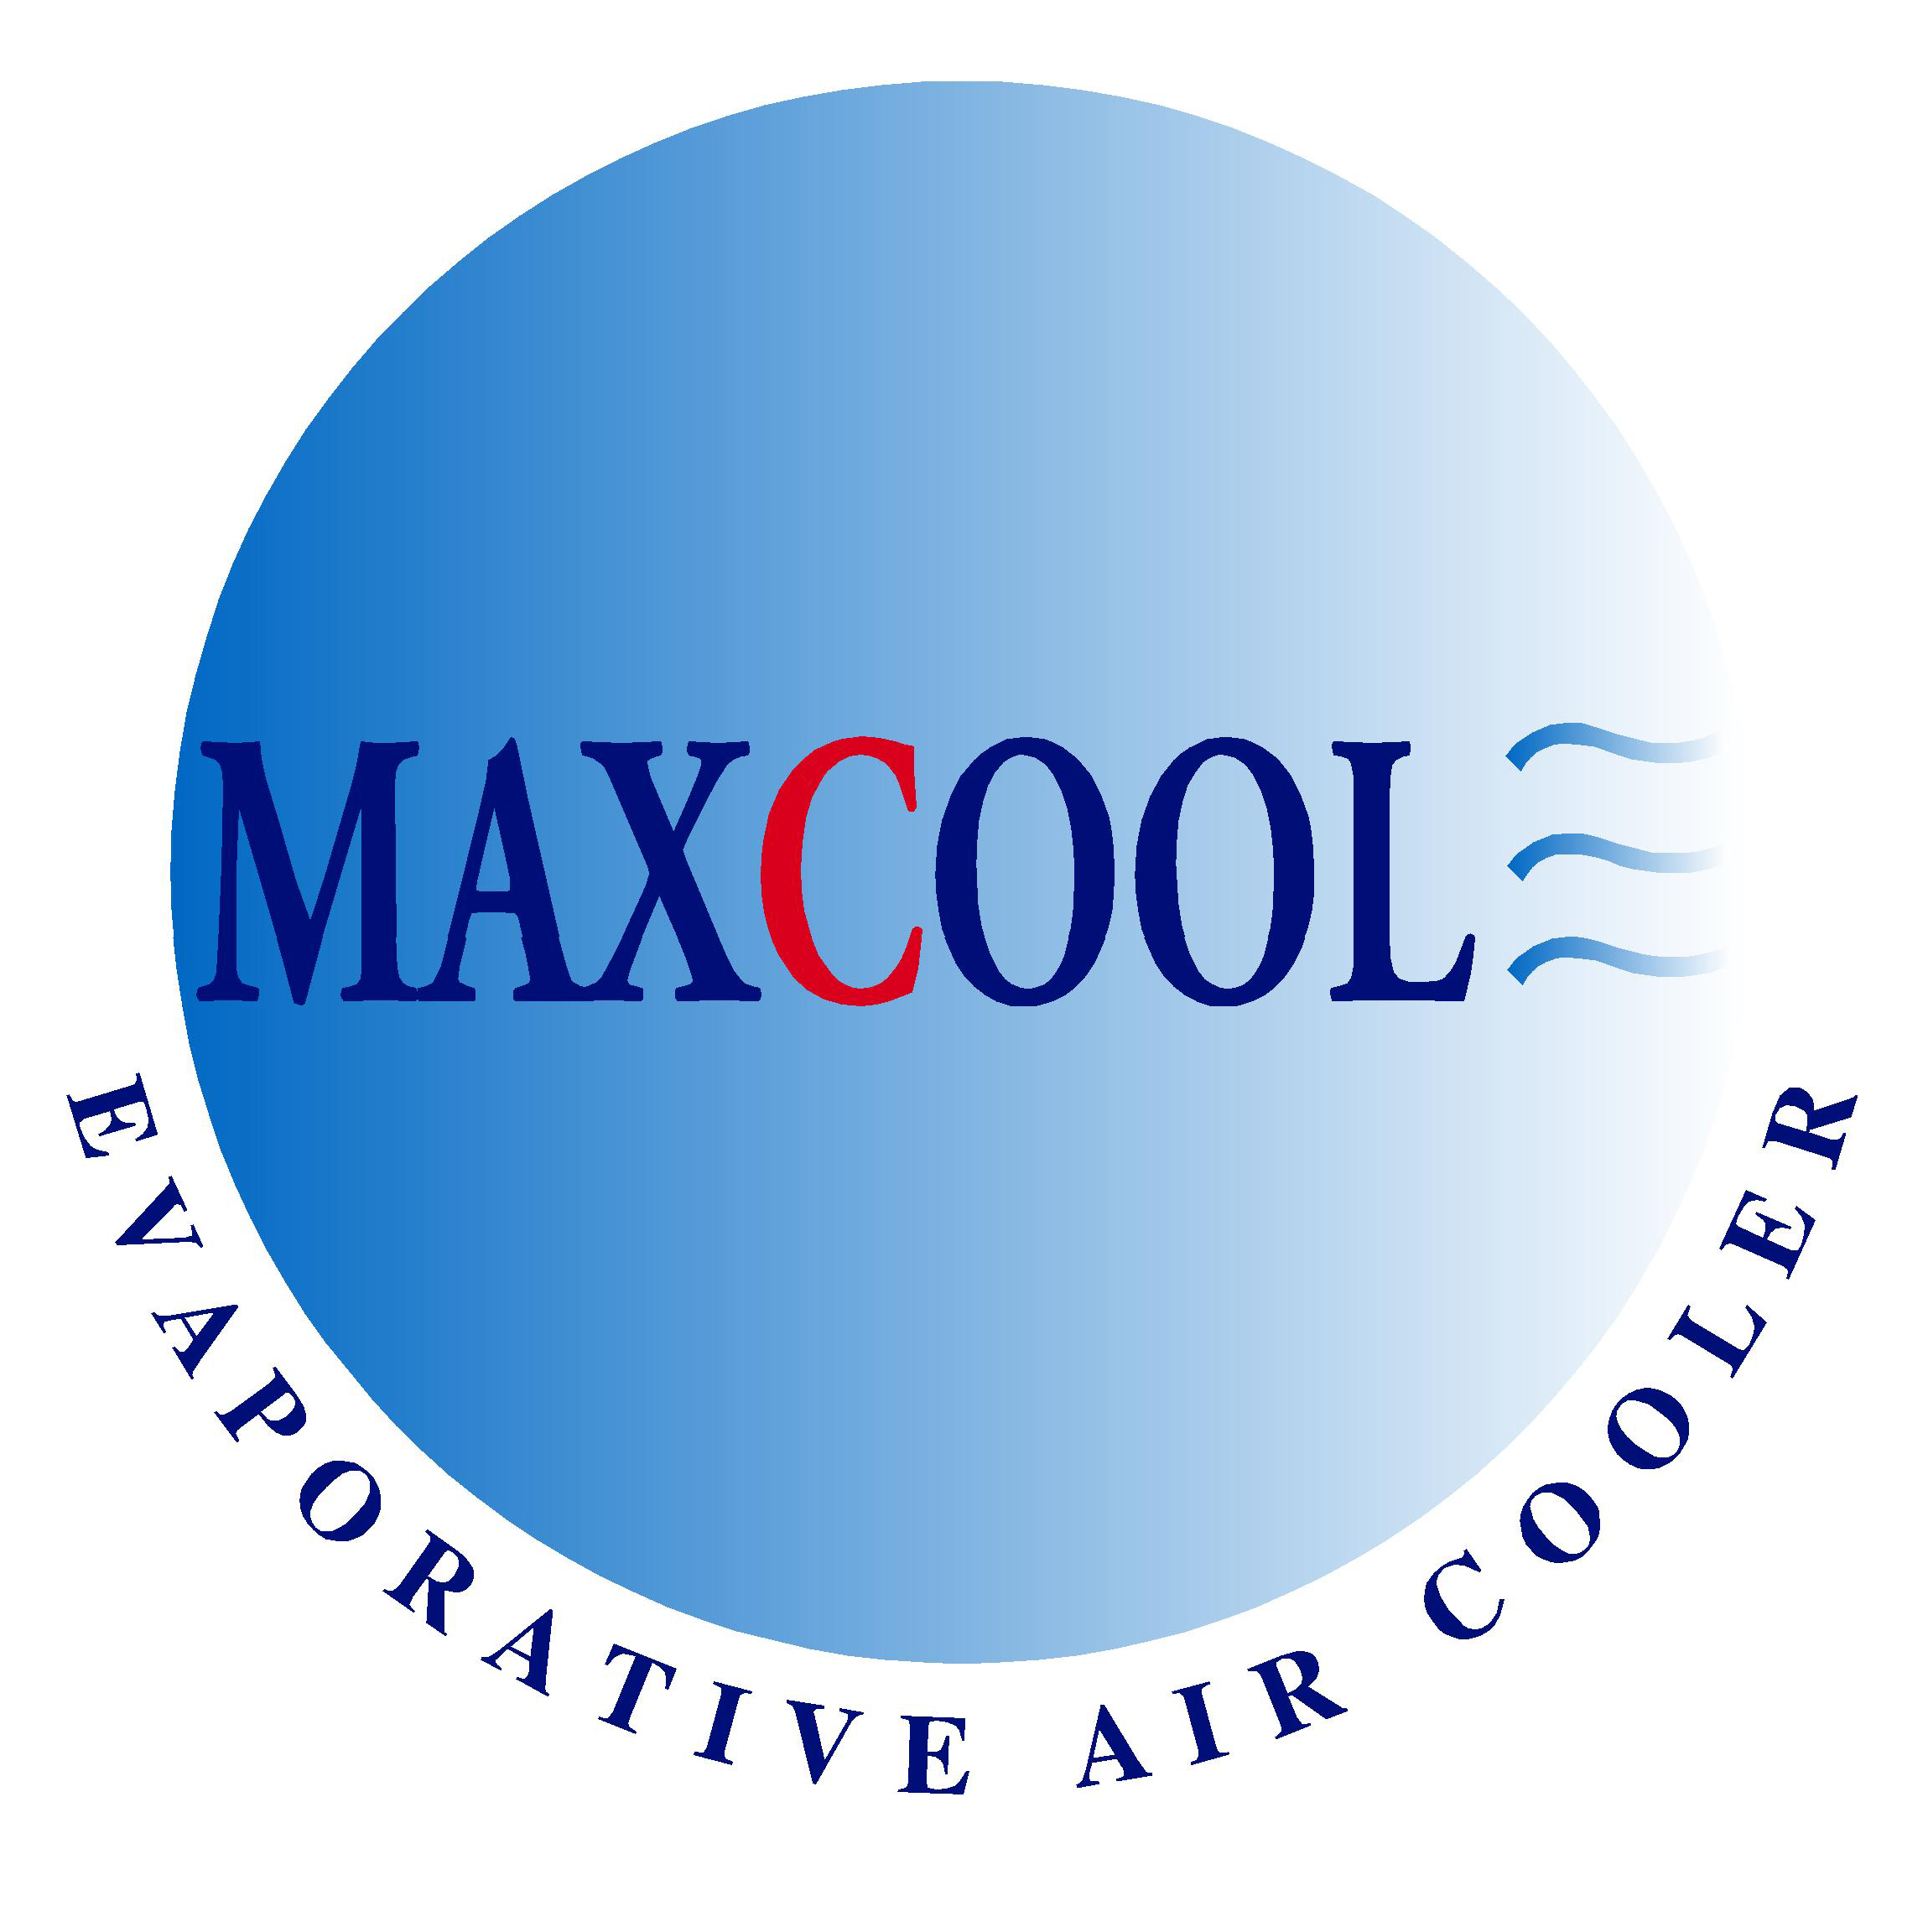 MAXCOOL products